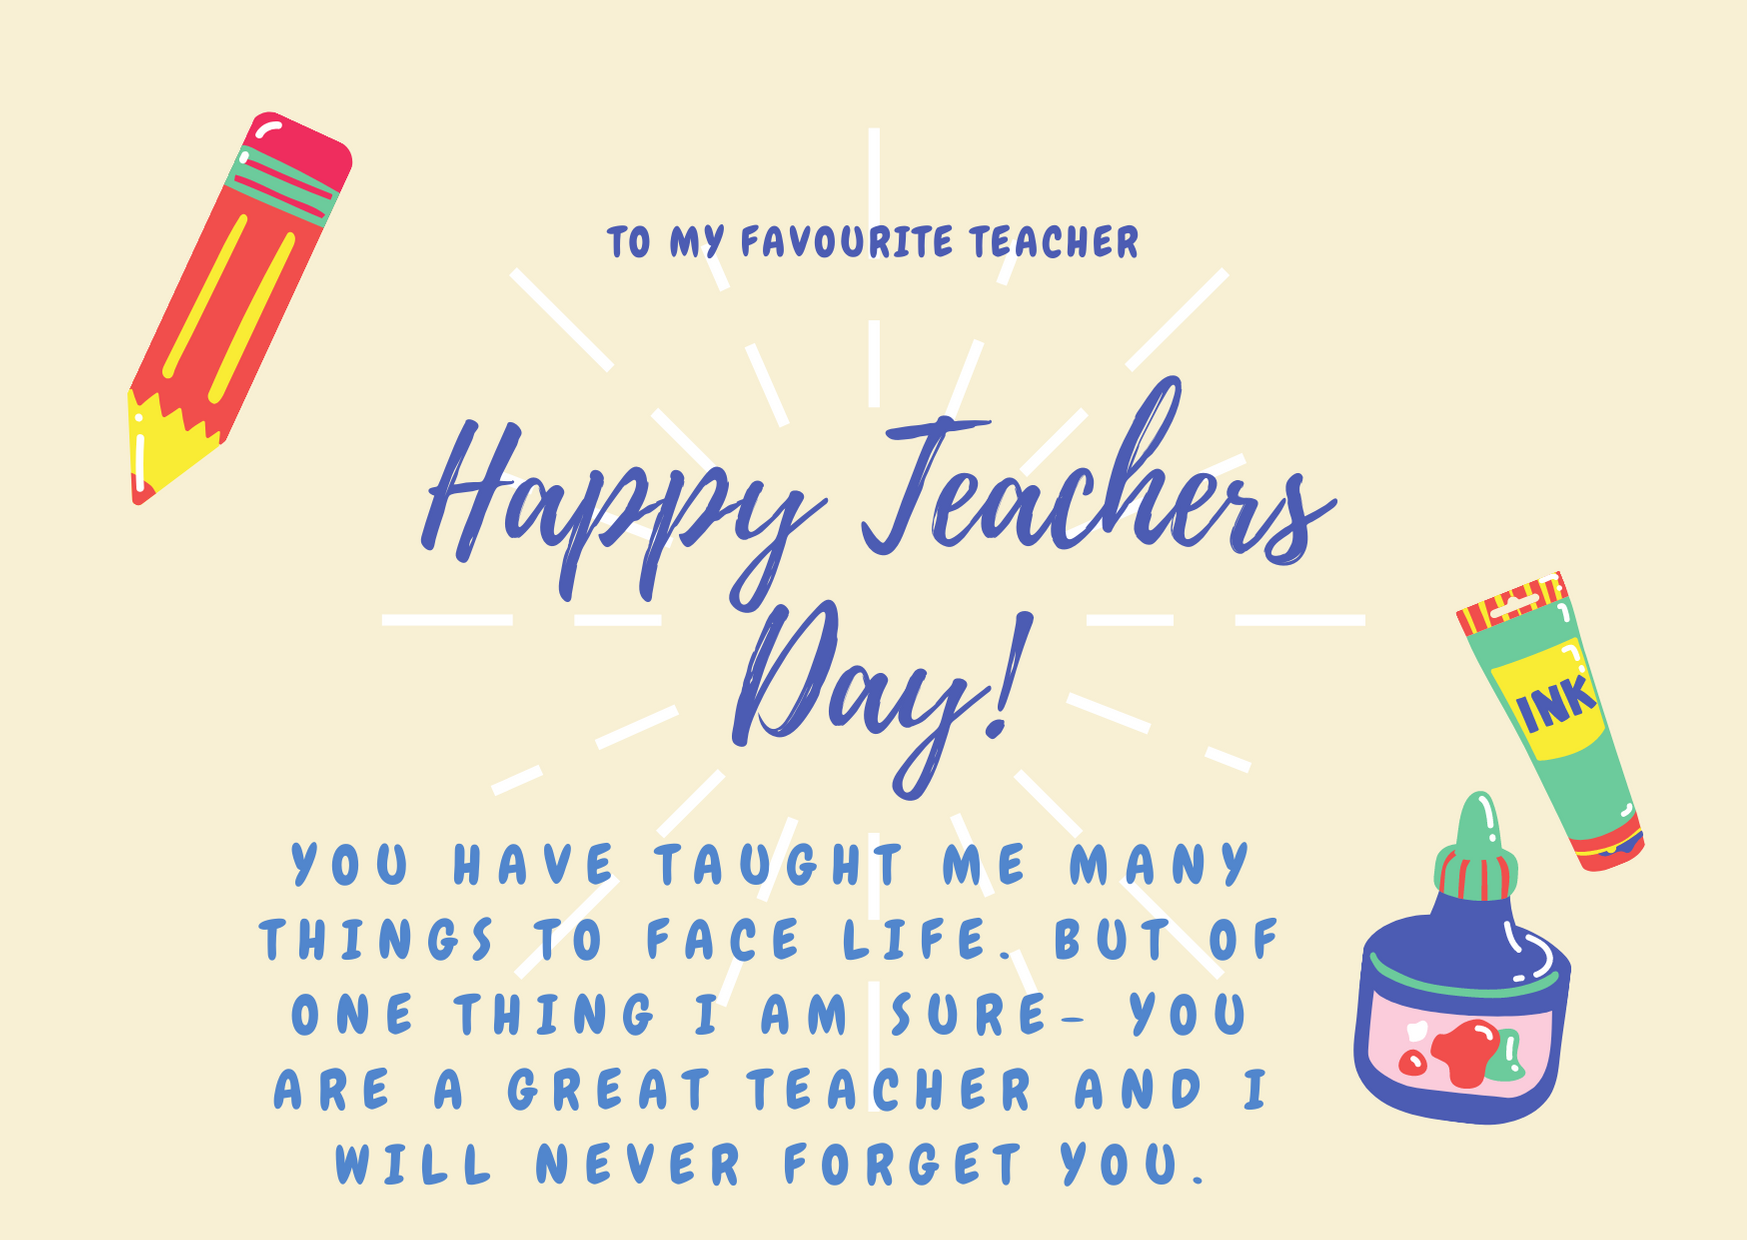 teachers day wishes and images